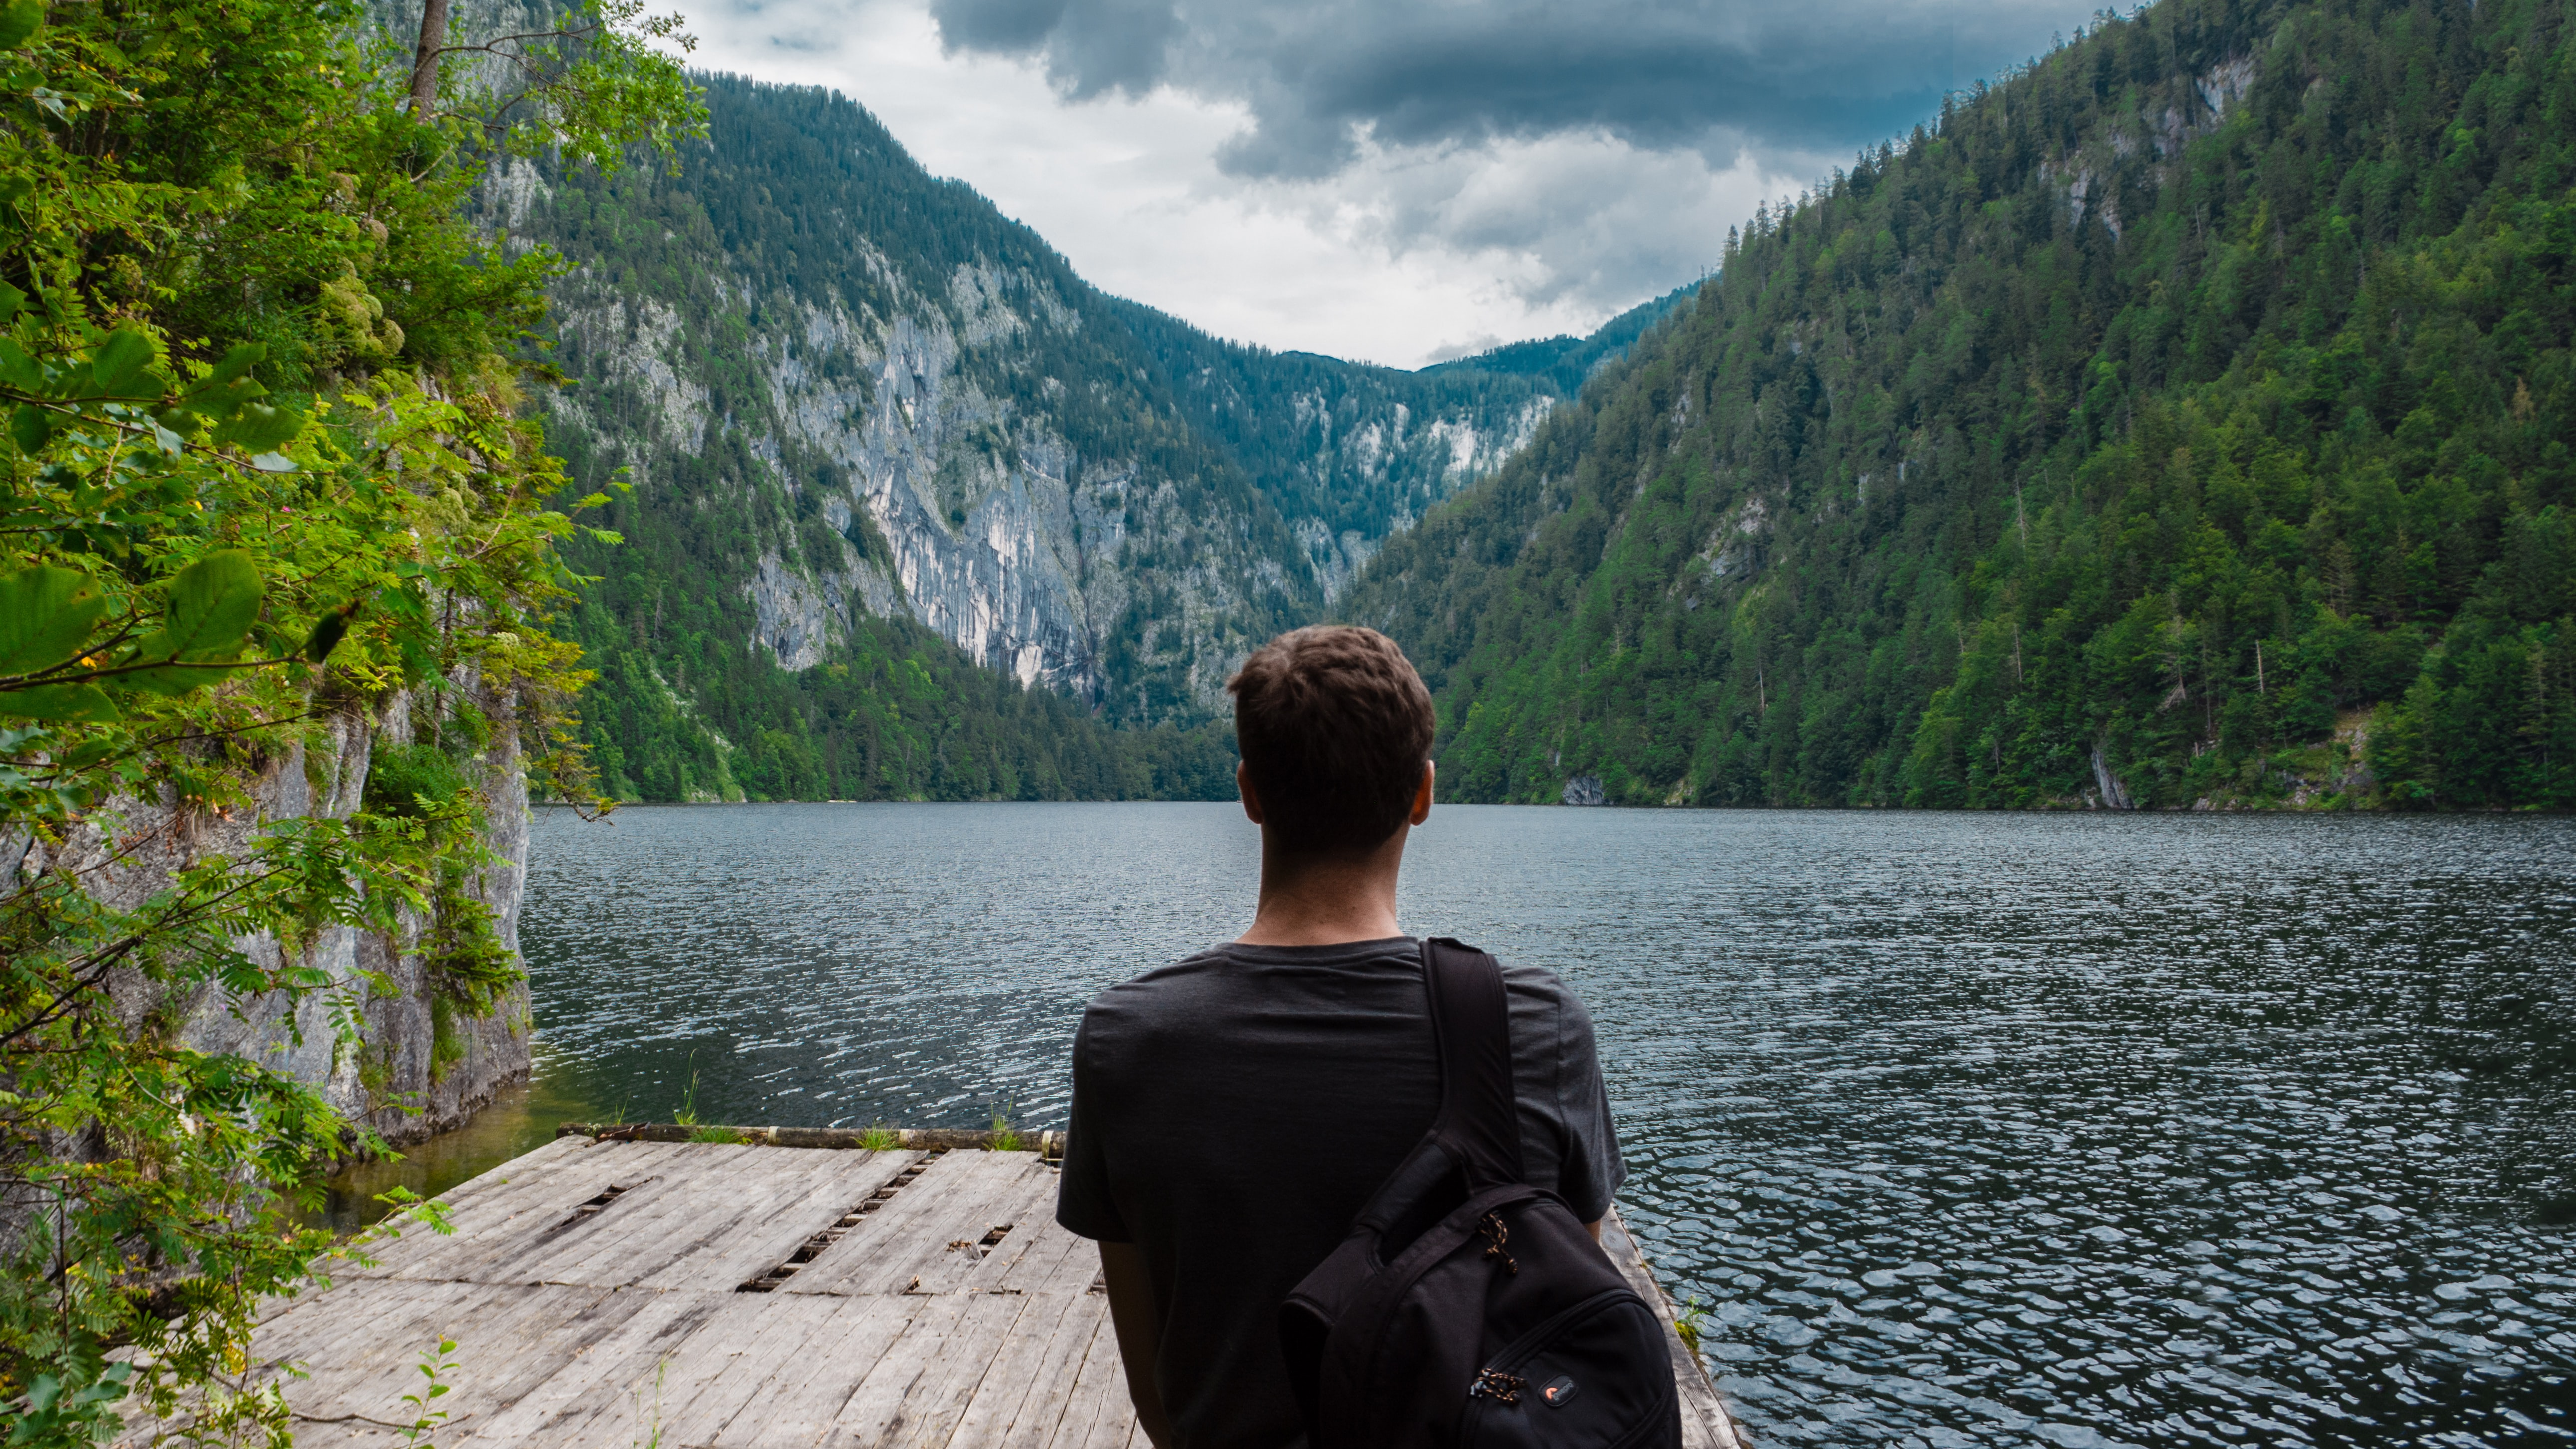 A man with a backpack on a wooden platform on a mountain lake in Austria